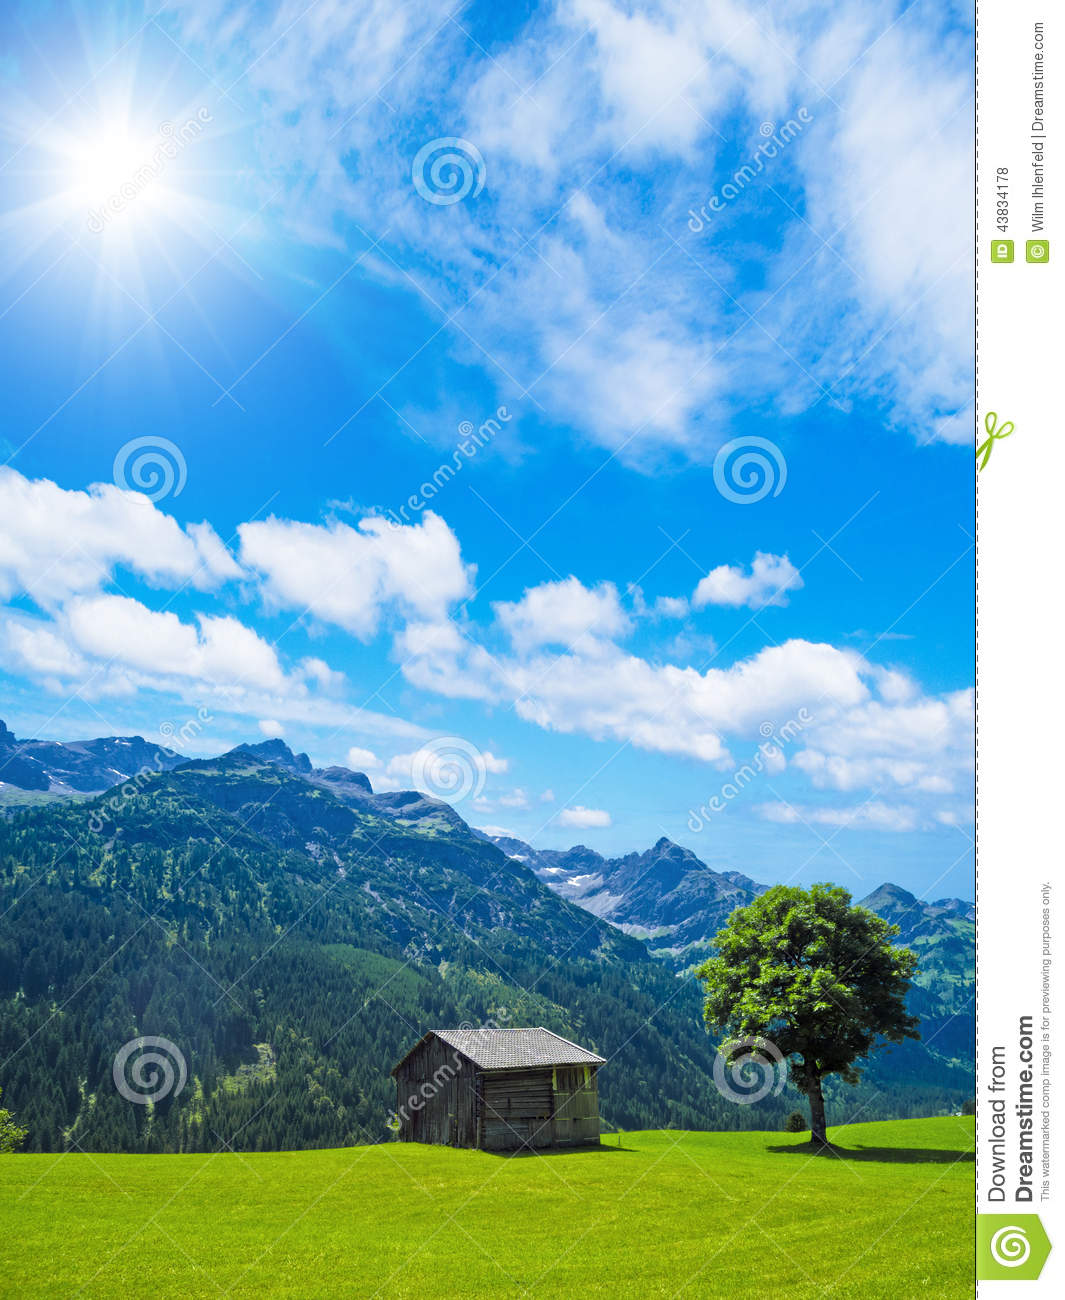 Cottage and tree in the mountains stock photo image for Cottage in the mountains